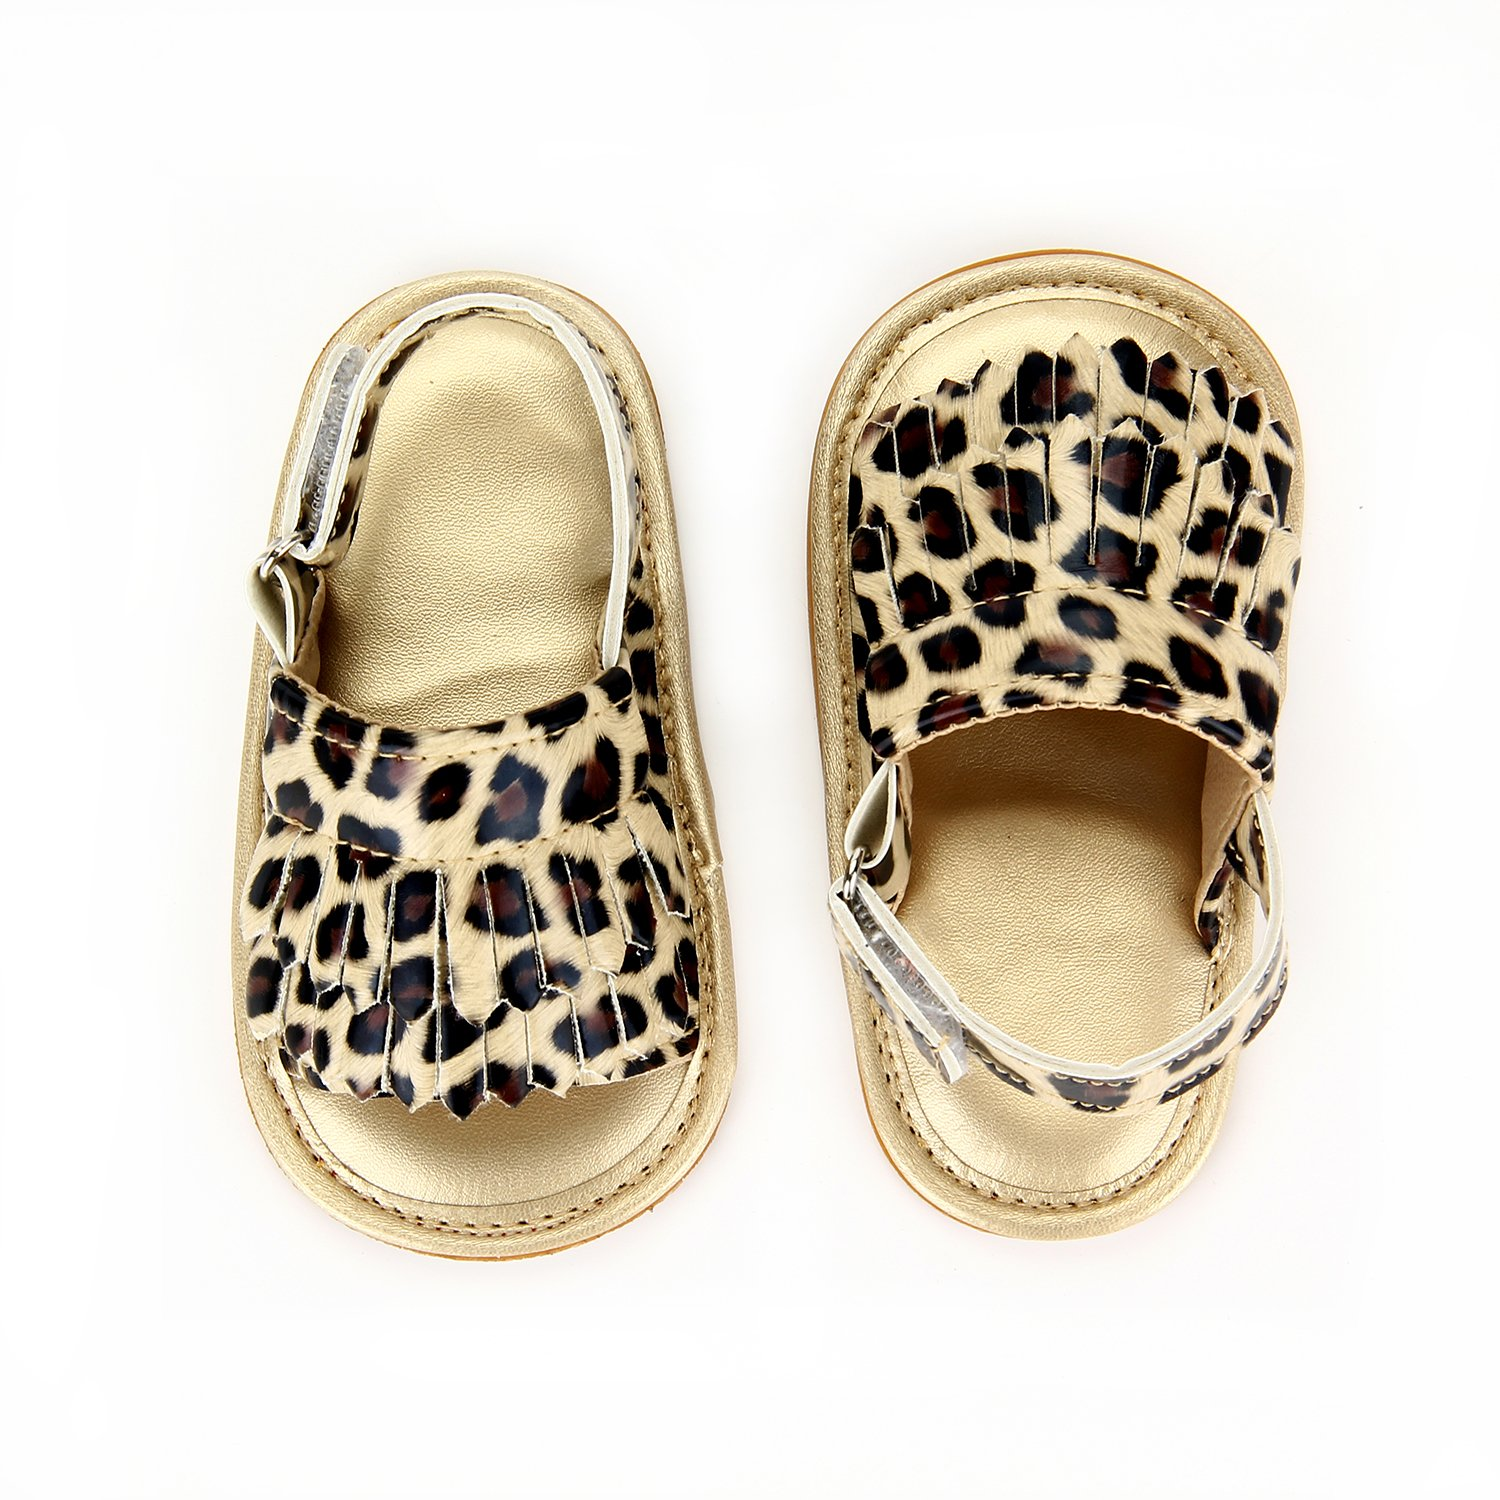 Baby Sandal with PU Leather Tassels Non-Slip Summer Toddler Slipper 0 6 12 18 24Months (12cm Sole(6-12 Months), Gold Leopad)